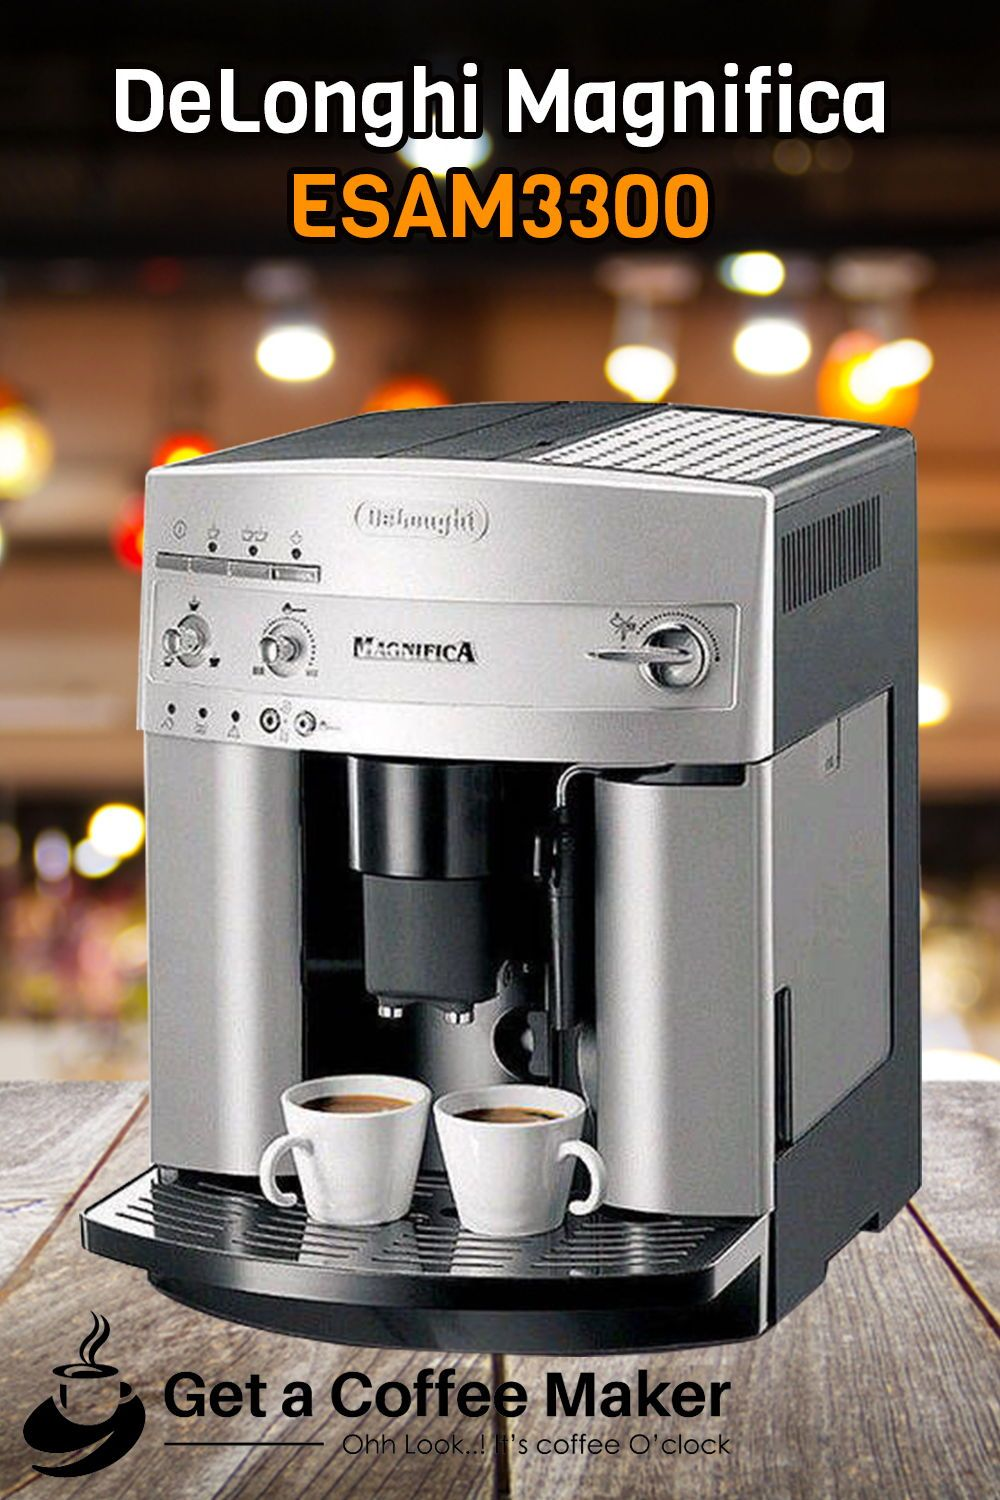 DeLonghi Magnifica ESAM3300 Review A Symbol of